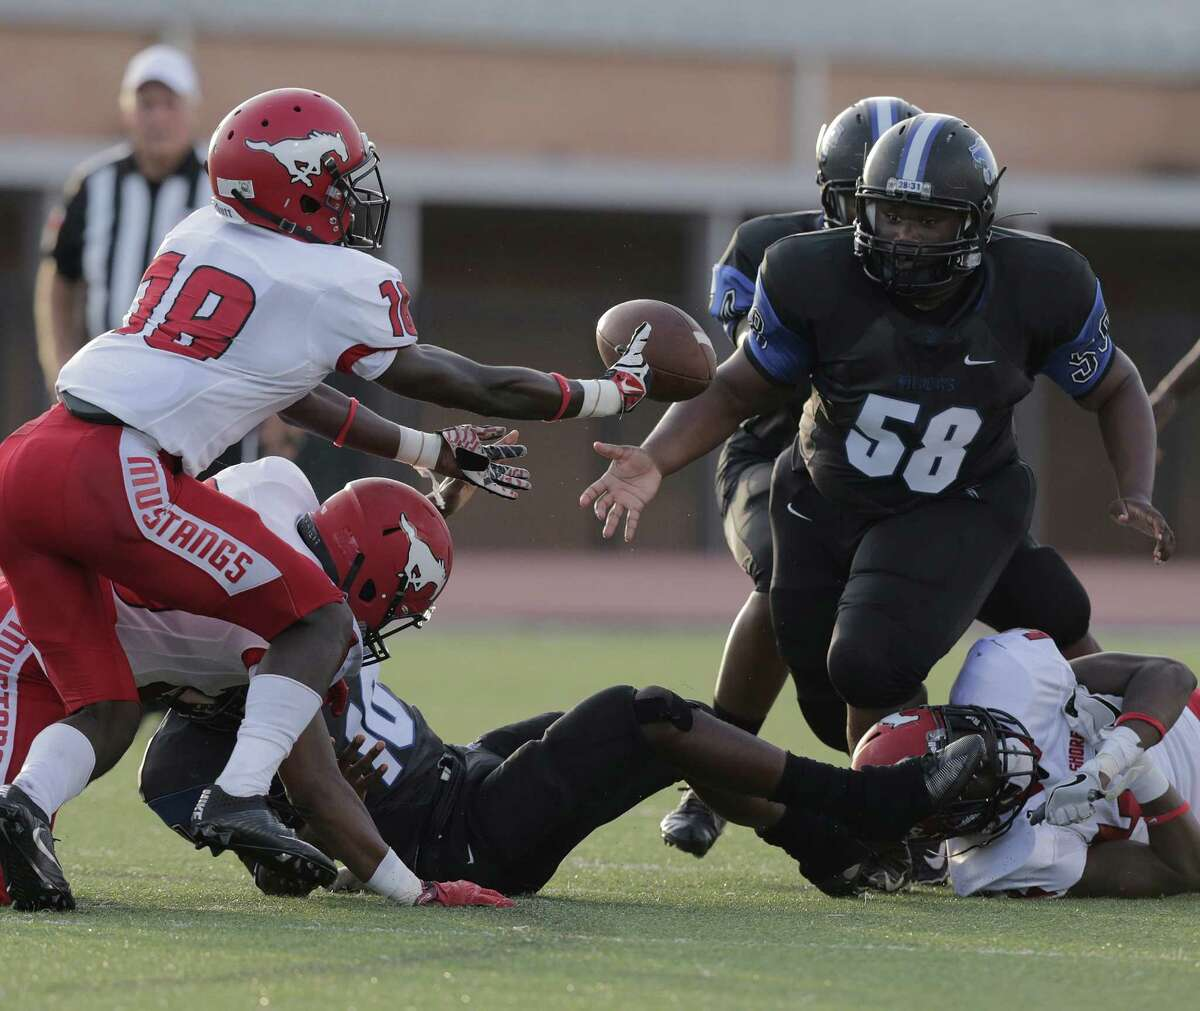 Dekaney's Quincy Gentry (58) watches a fumbled football as North Shore's Jaylen Thomas (18) goes for it on Thursday, Aug. 25, 2016, in Spring. Dekaney recovered the ball.